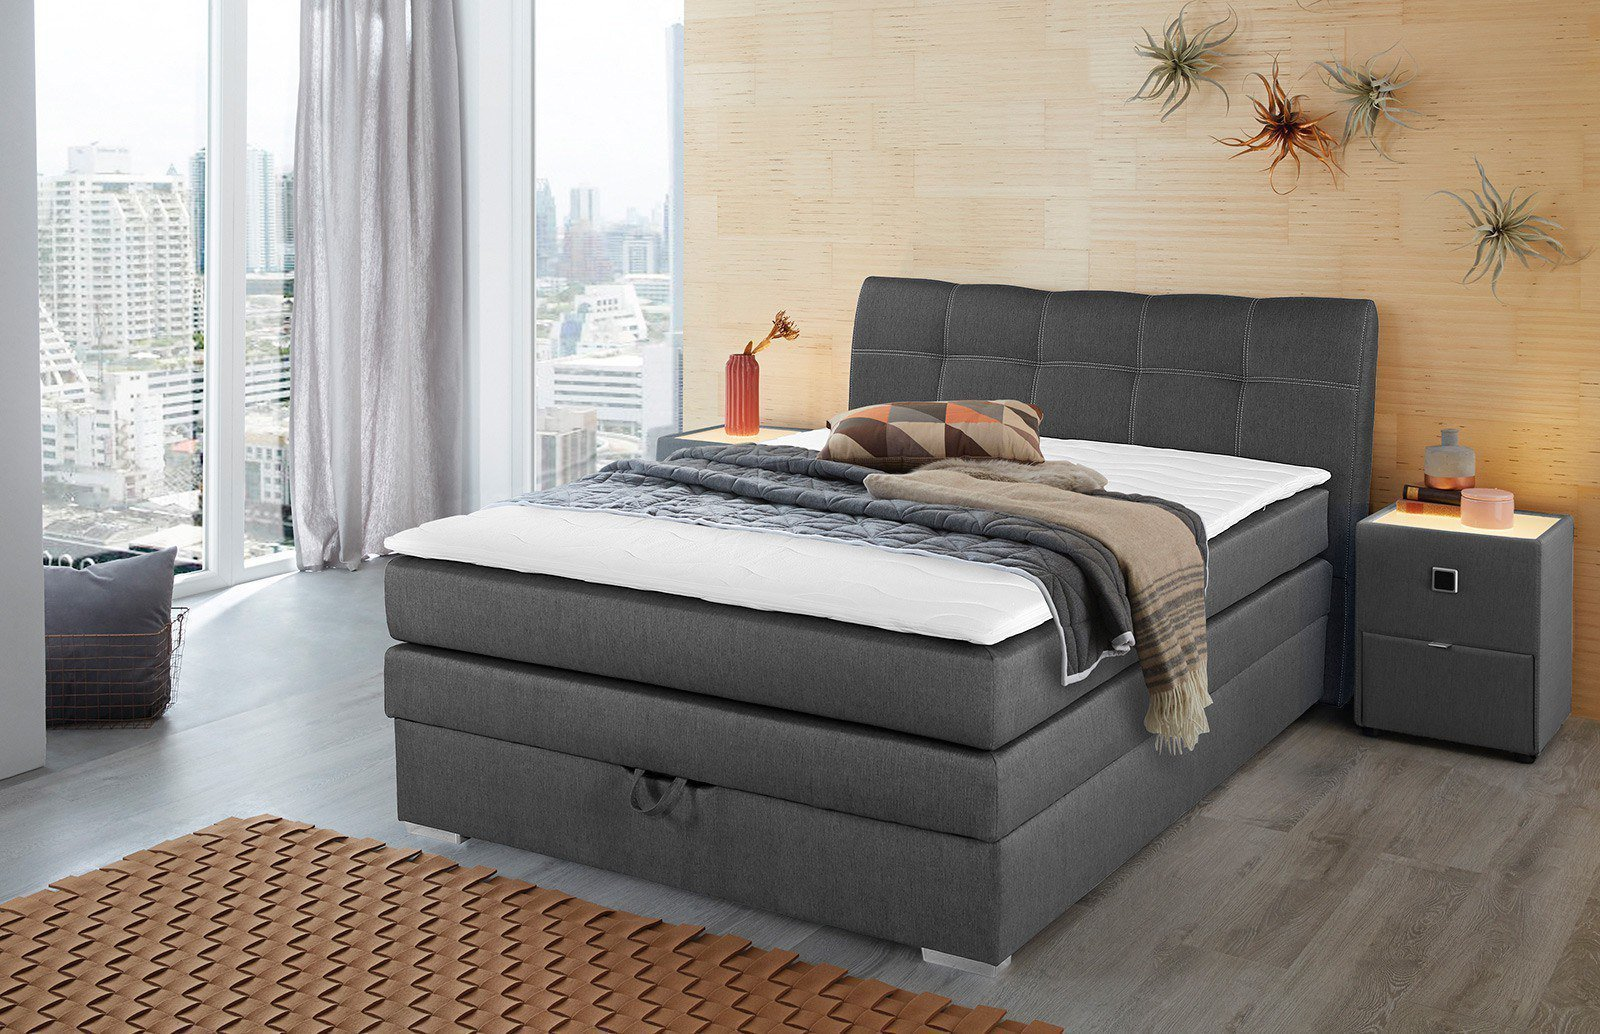 jockenh fer amelie boxspringbett in grau mit bettkasten m bel letz ihr online shop. Black Bedroom Furniture Sets. Home Design Ideas